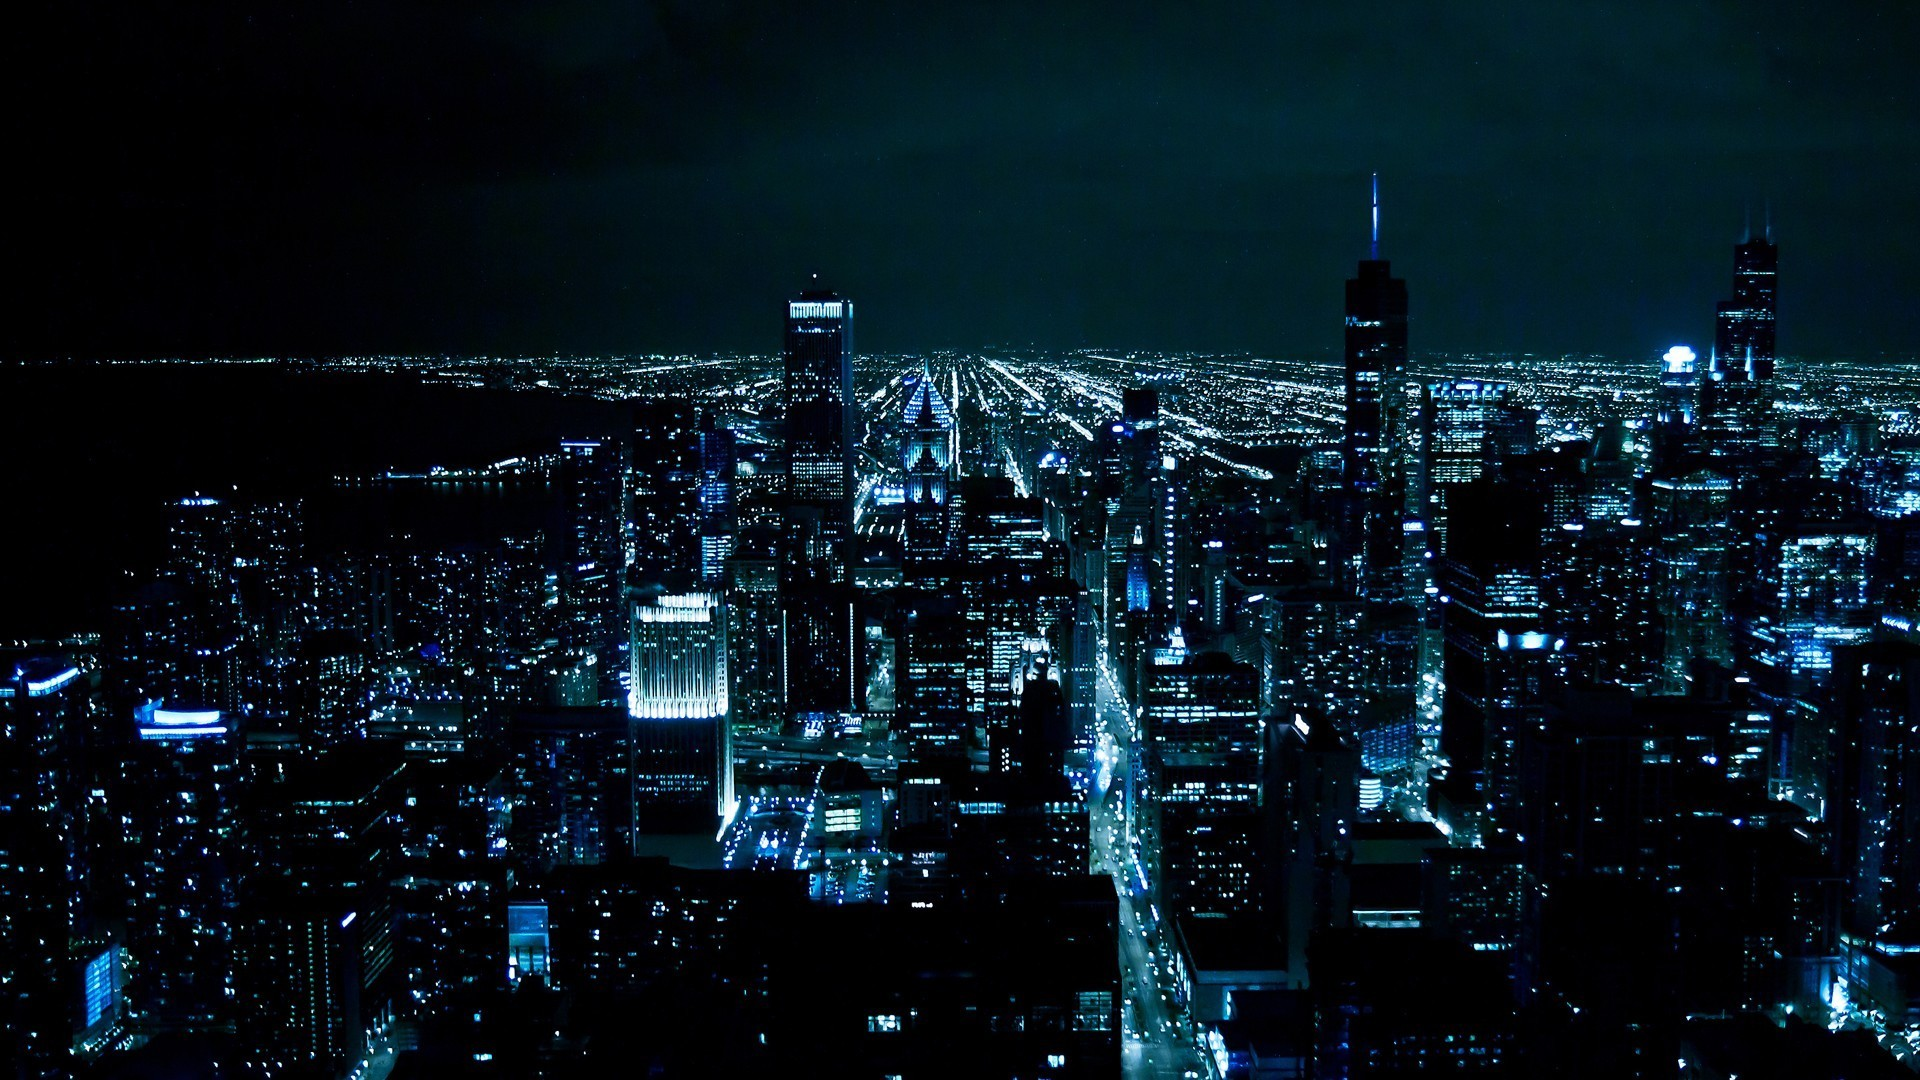 chicago at night wallpaper | allwallpaper.in #421 | pc | en